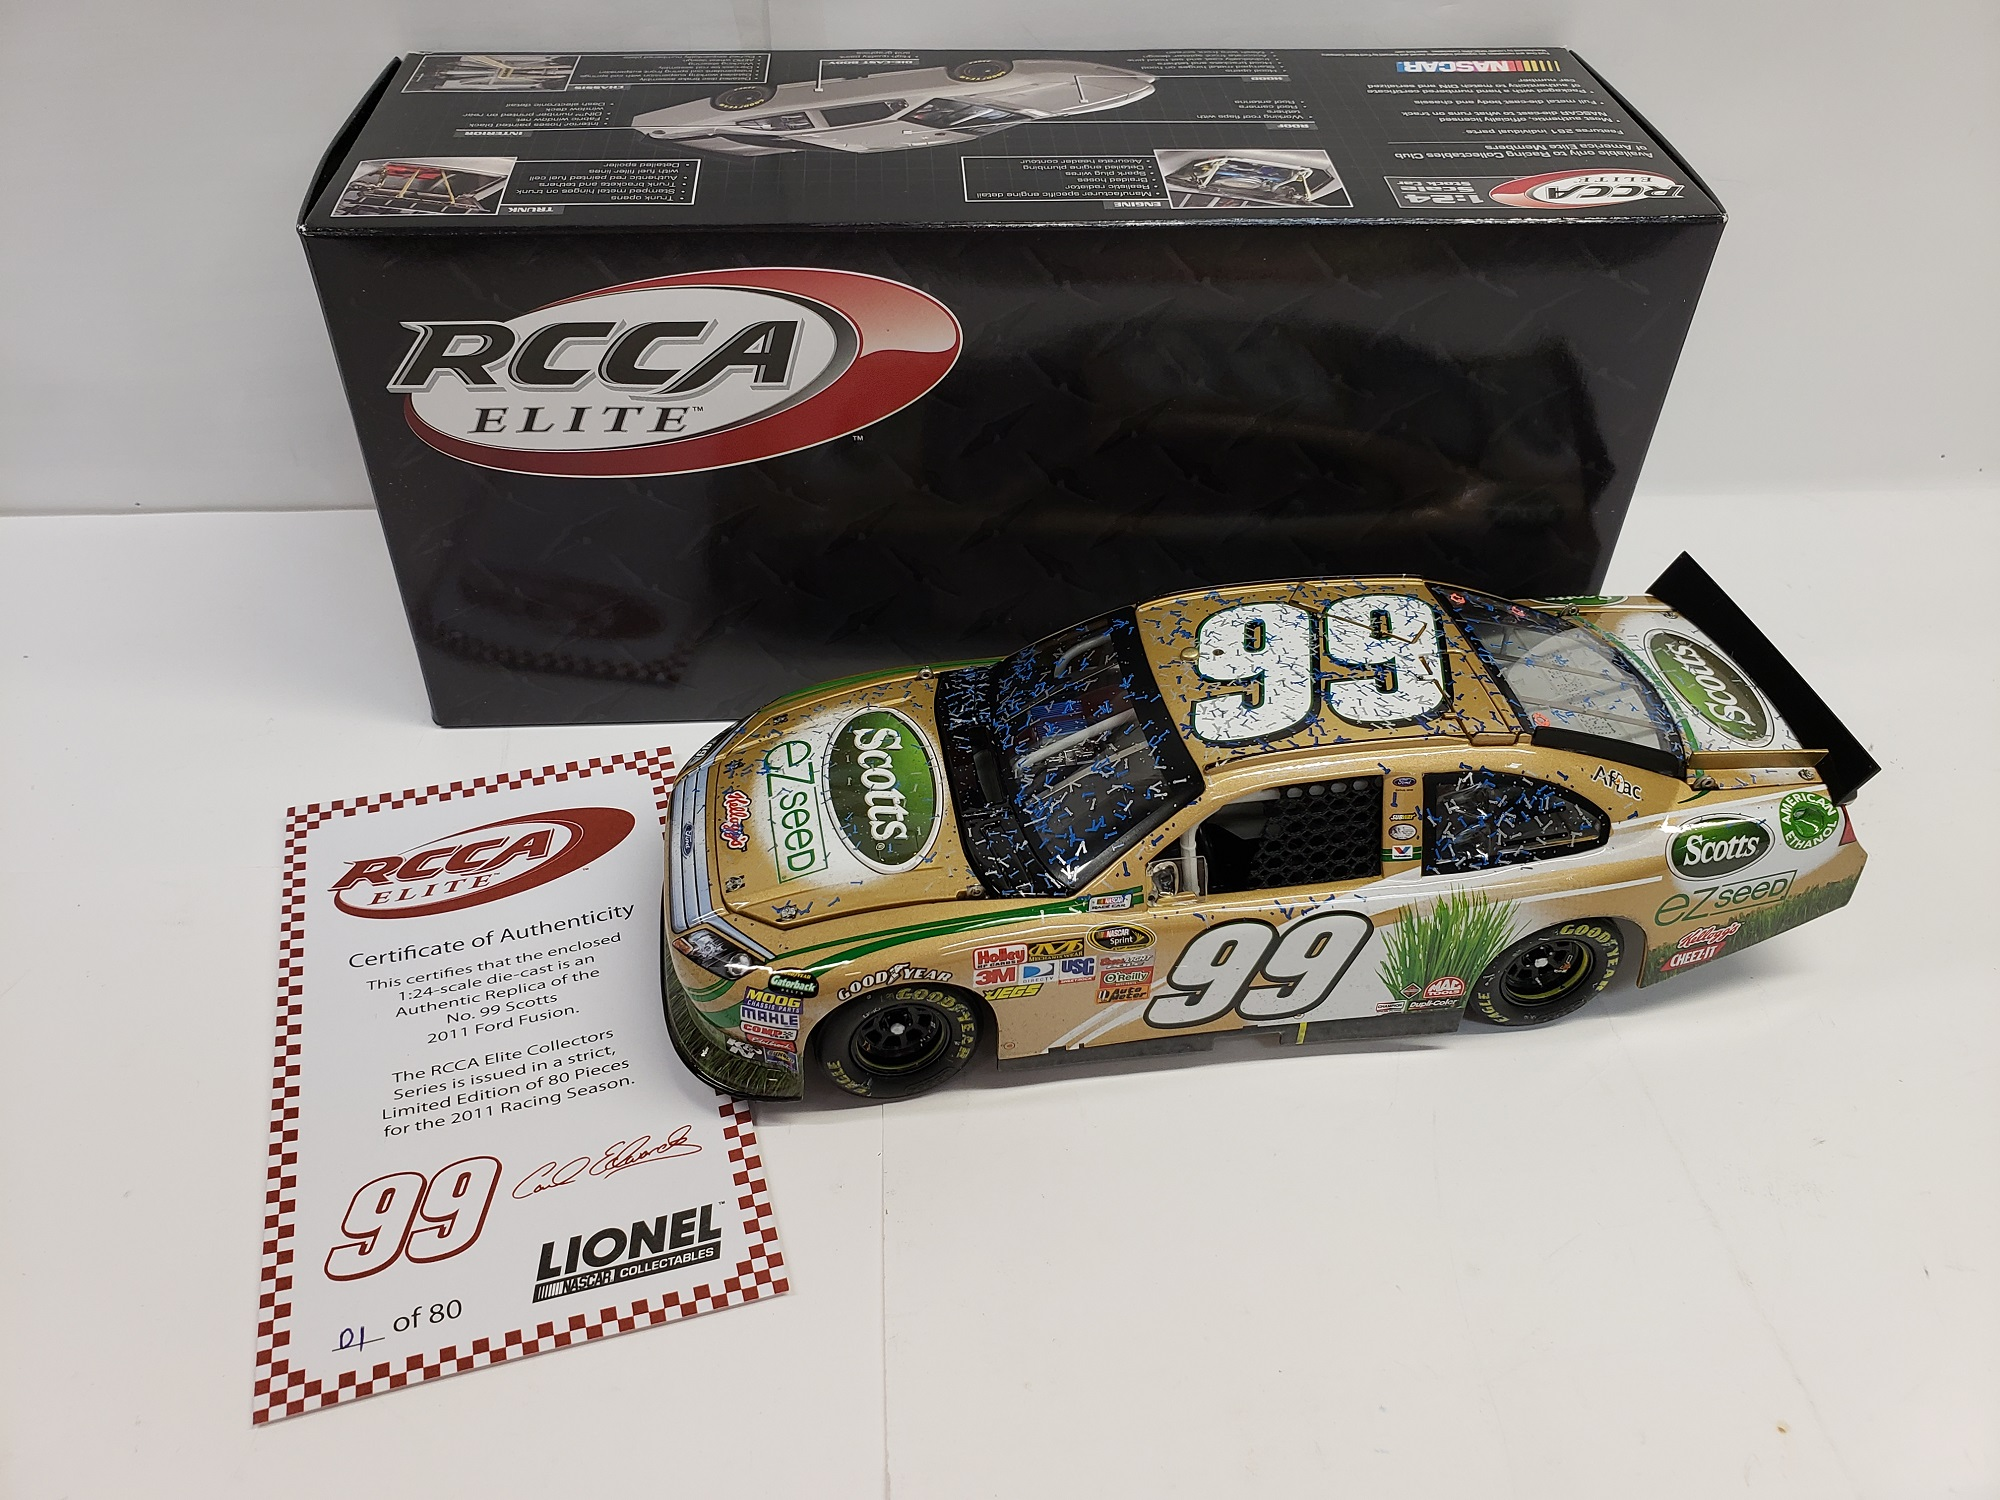 2011 Carl Edwards Scotts  RCCA Elite